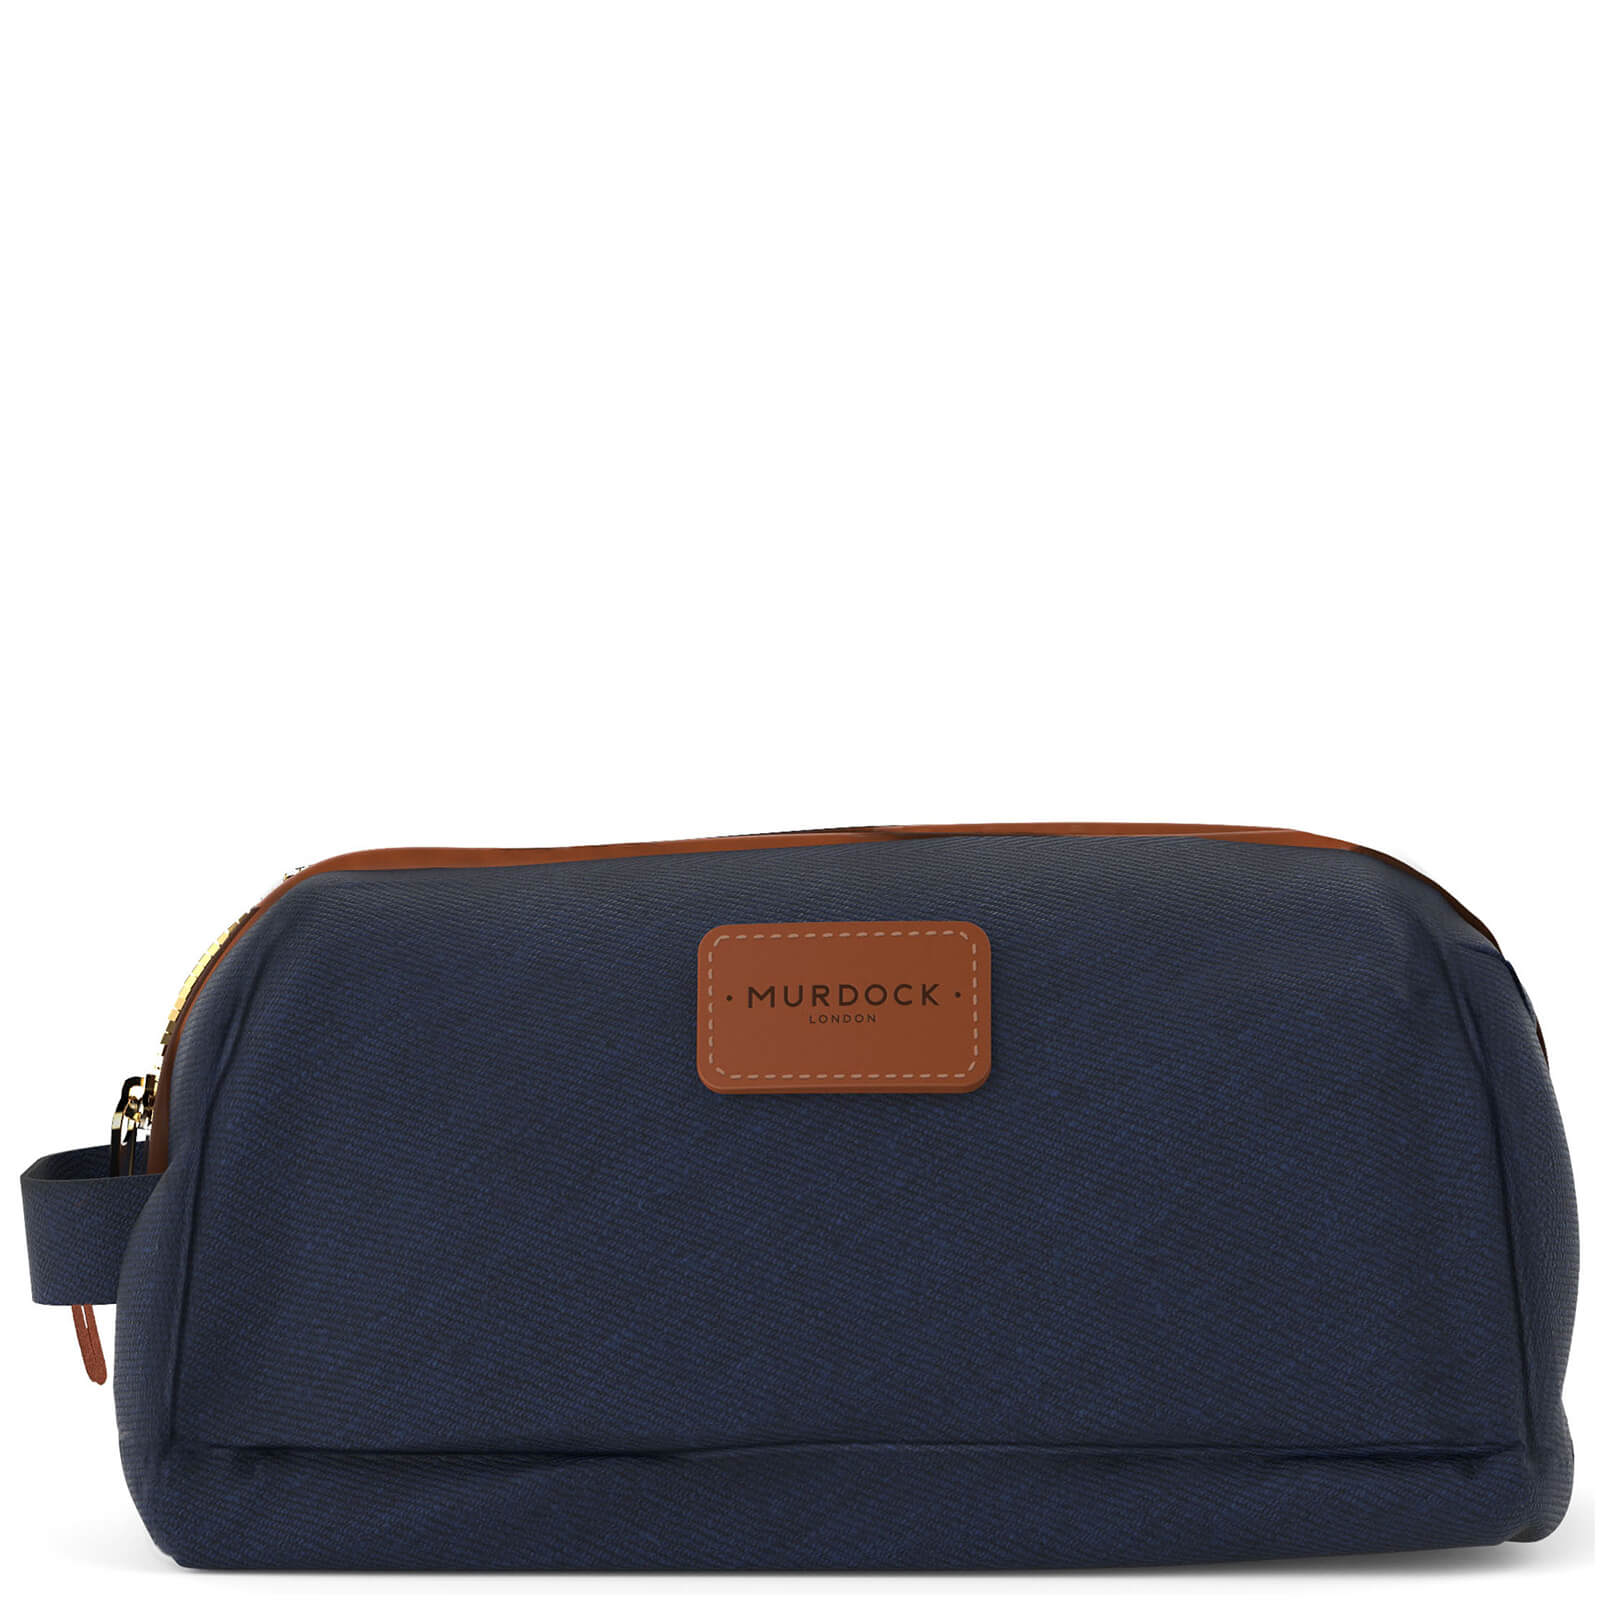 Description. Navy canvas wash bag from Murdock London. Exclusively  handcrafted in England by Brady ... dafc29a599ada